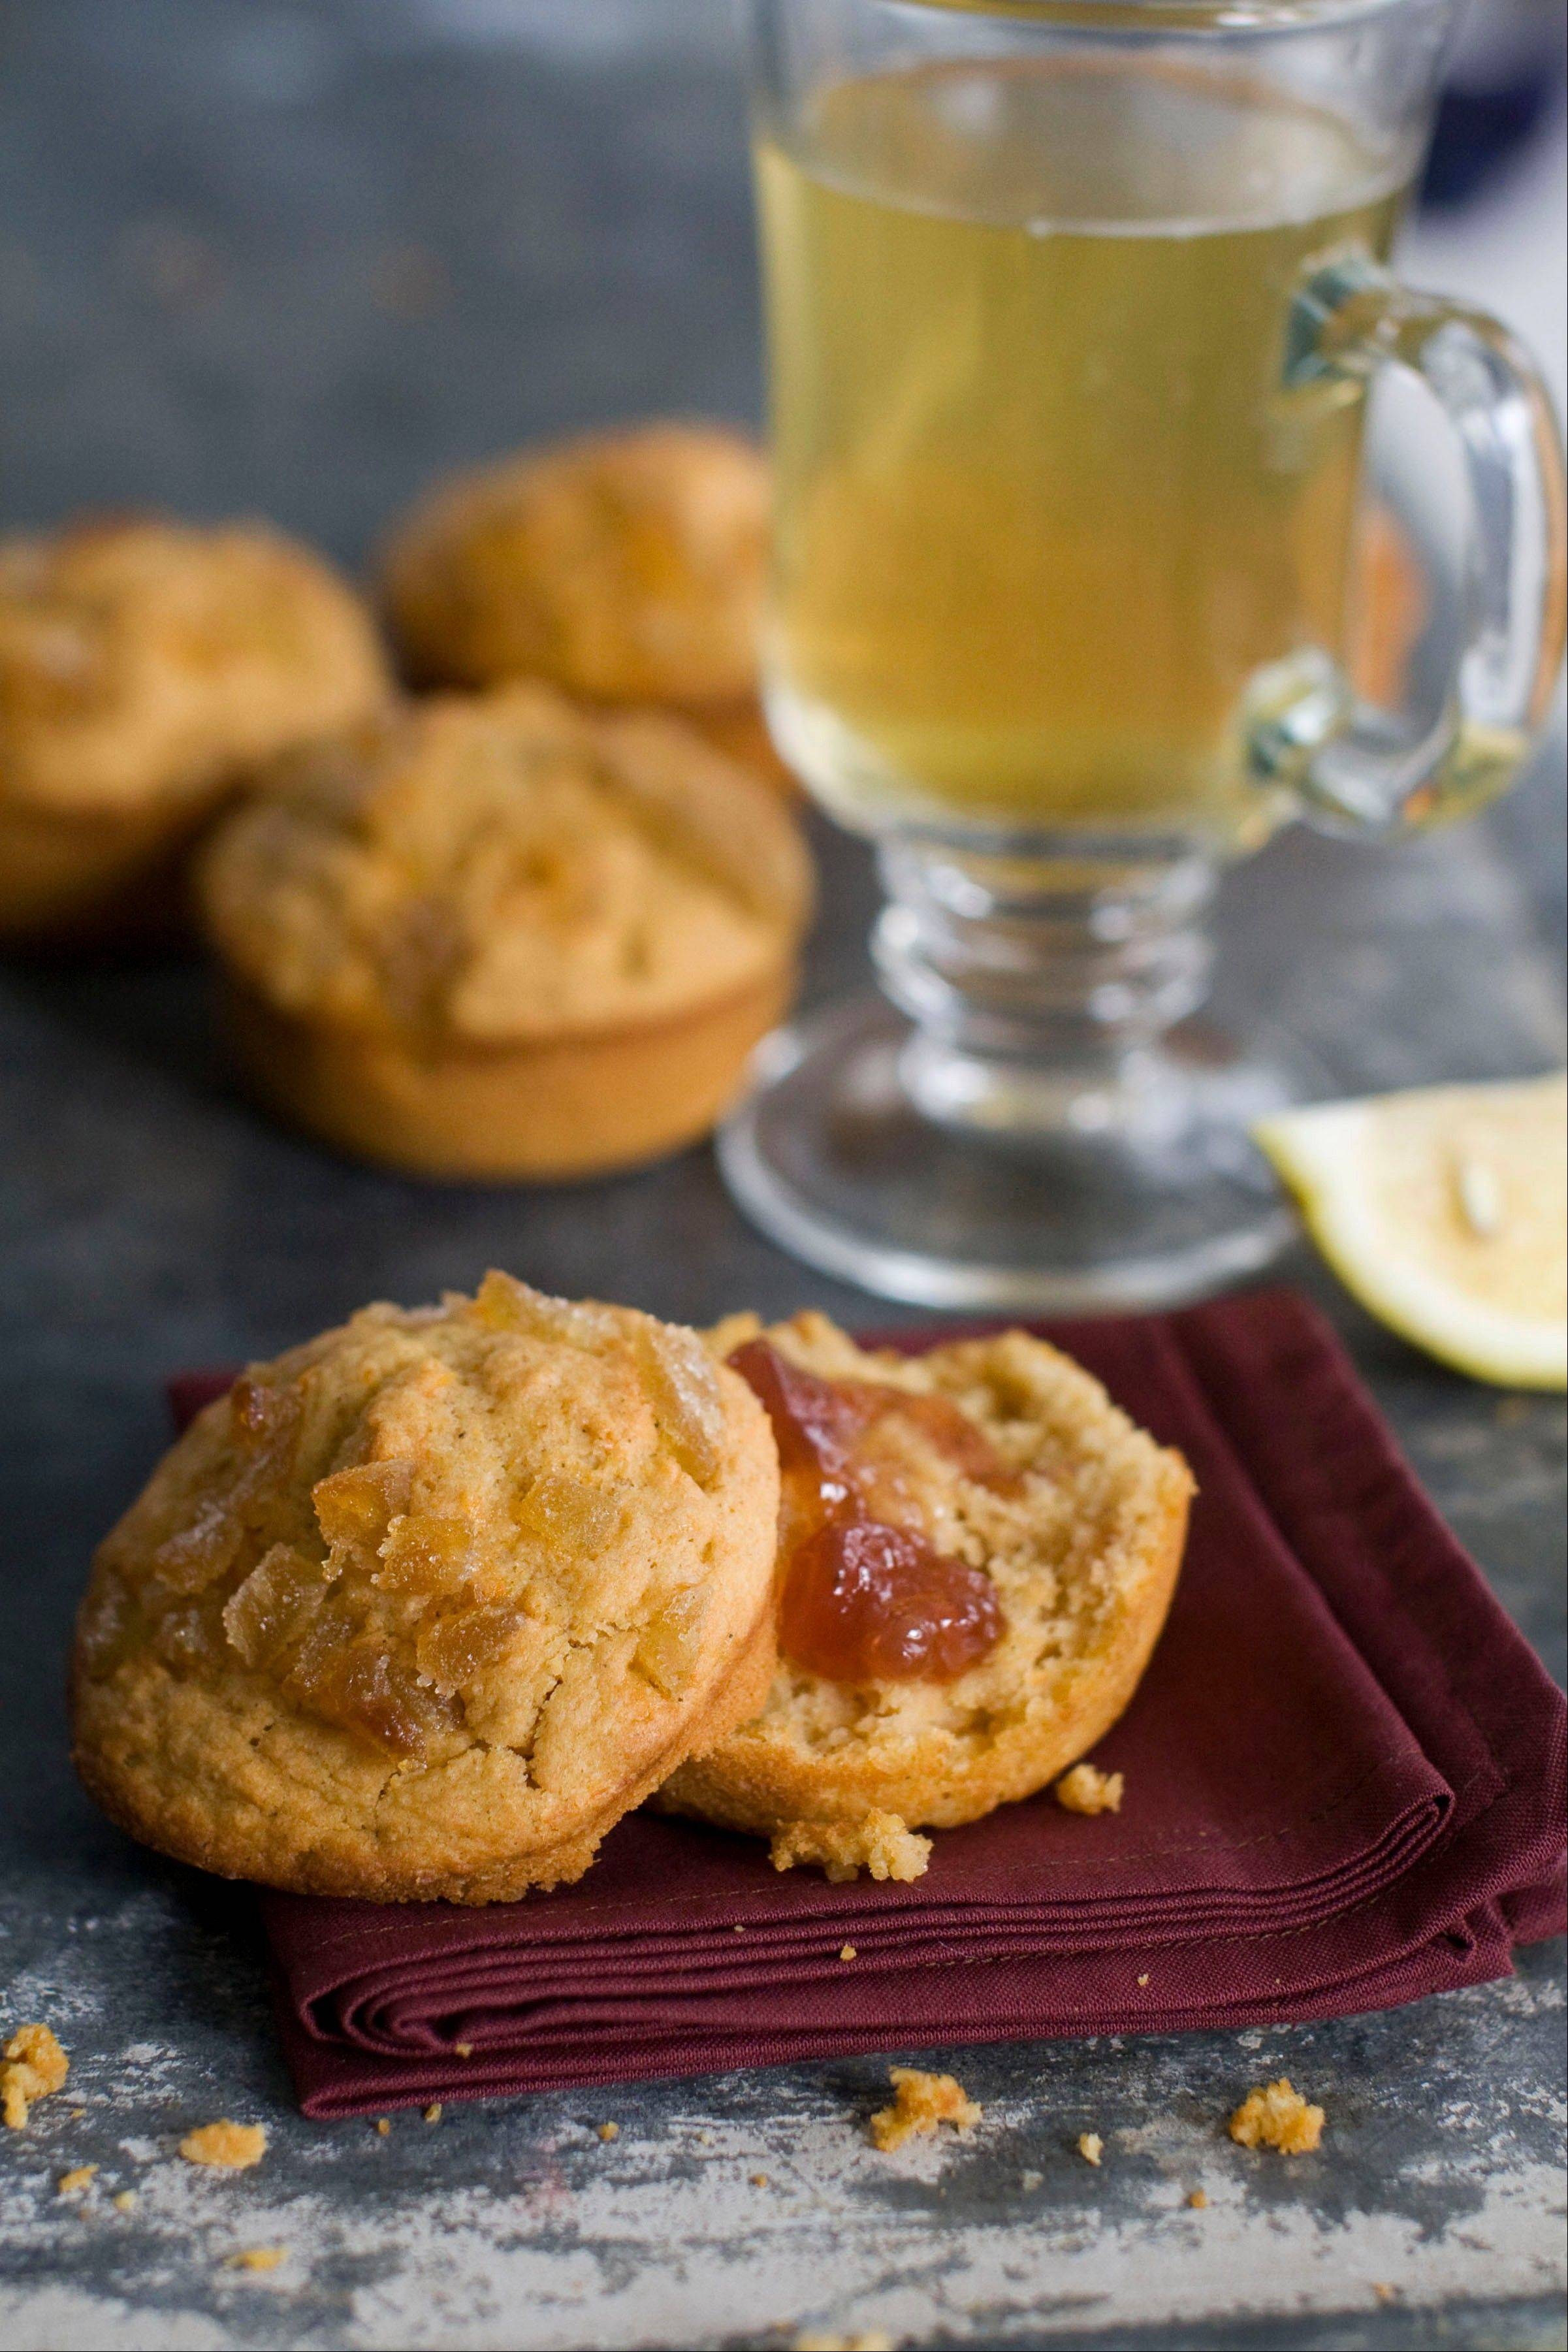 Candied ginger perks up these healthful Sweet Potato Buttermilk Muffins.